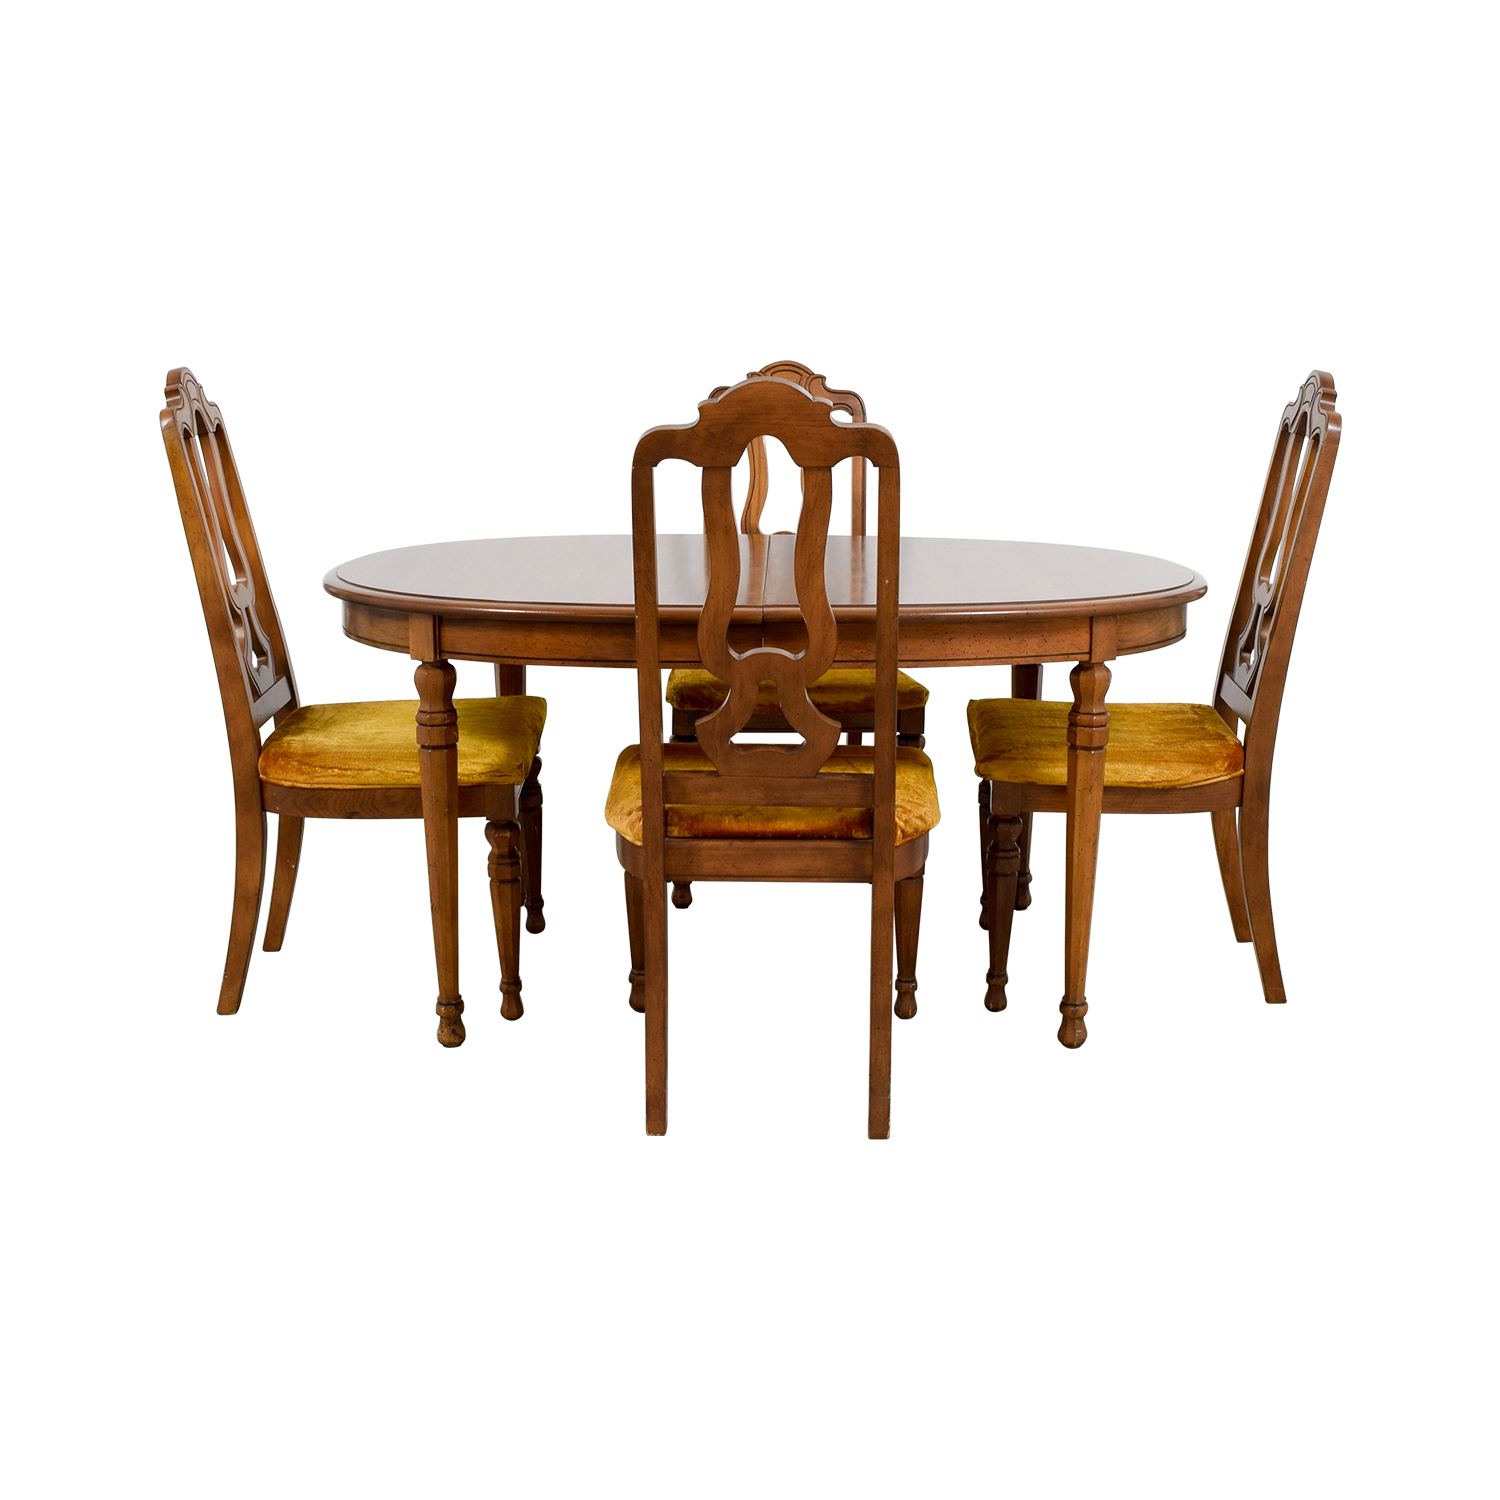 Bernhardt Bernhardt Vintage Dining Set with Extension Leaf and Chairs price